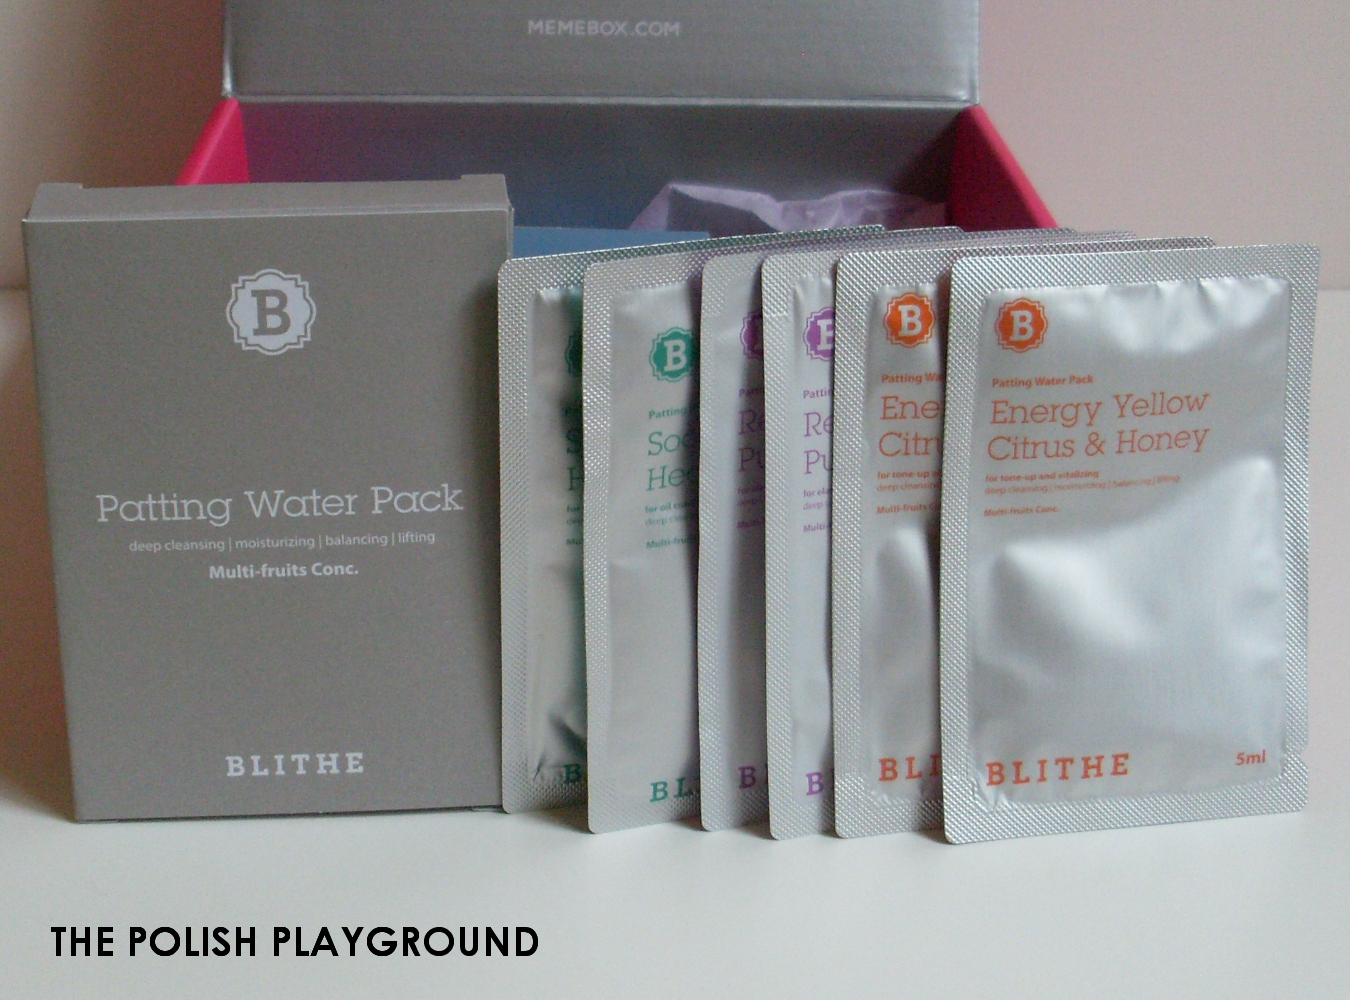 Memebox Special #81 The Next Best Thing in Skin Care Unboxing - Blithe Patting Water Pack (Includes Energy Yellow Citrus & Honey, Soothing & Healing Green Tea, and Rejuvenating Purple Berry)